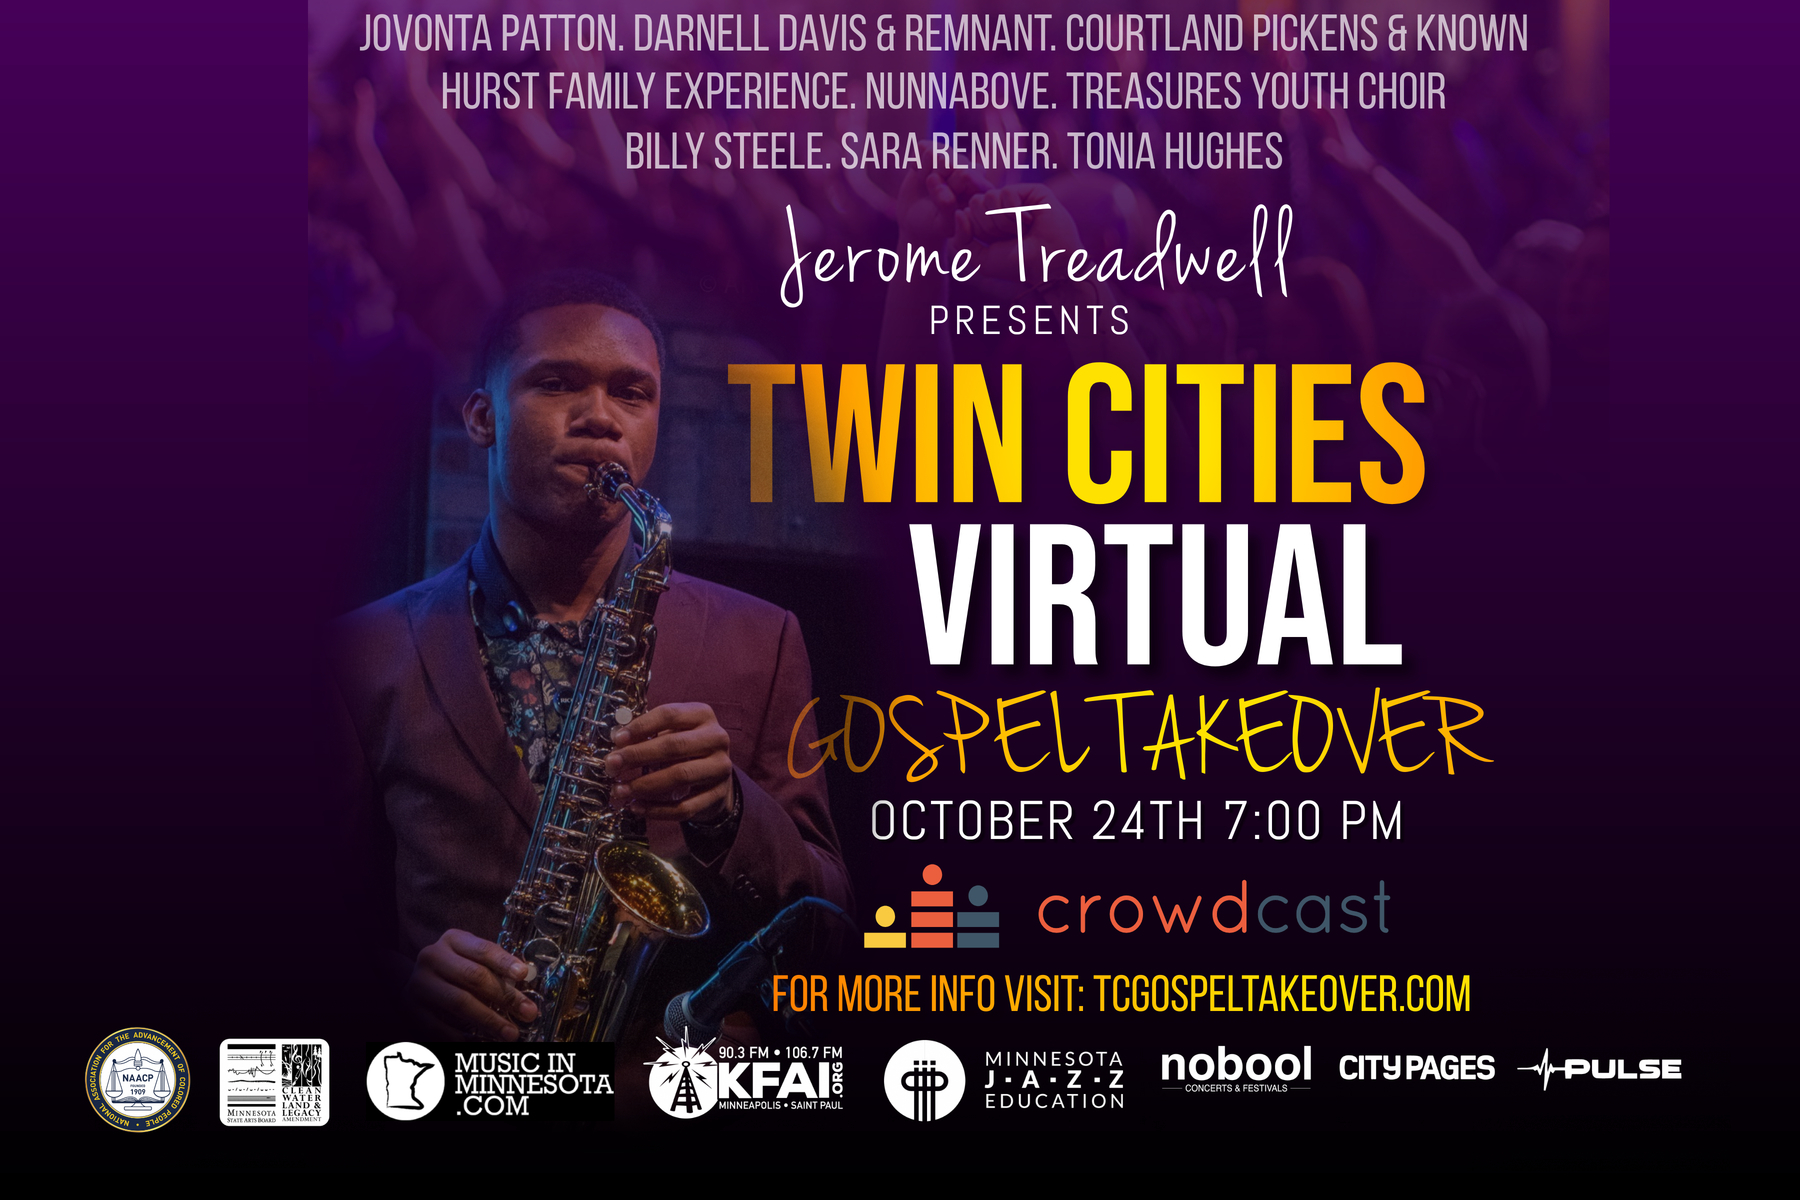 Caption: MN Gospel Takeover poster, Credit: Jerome Treadwell